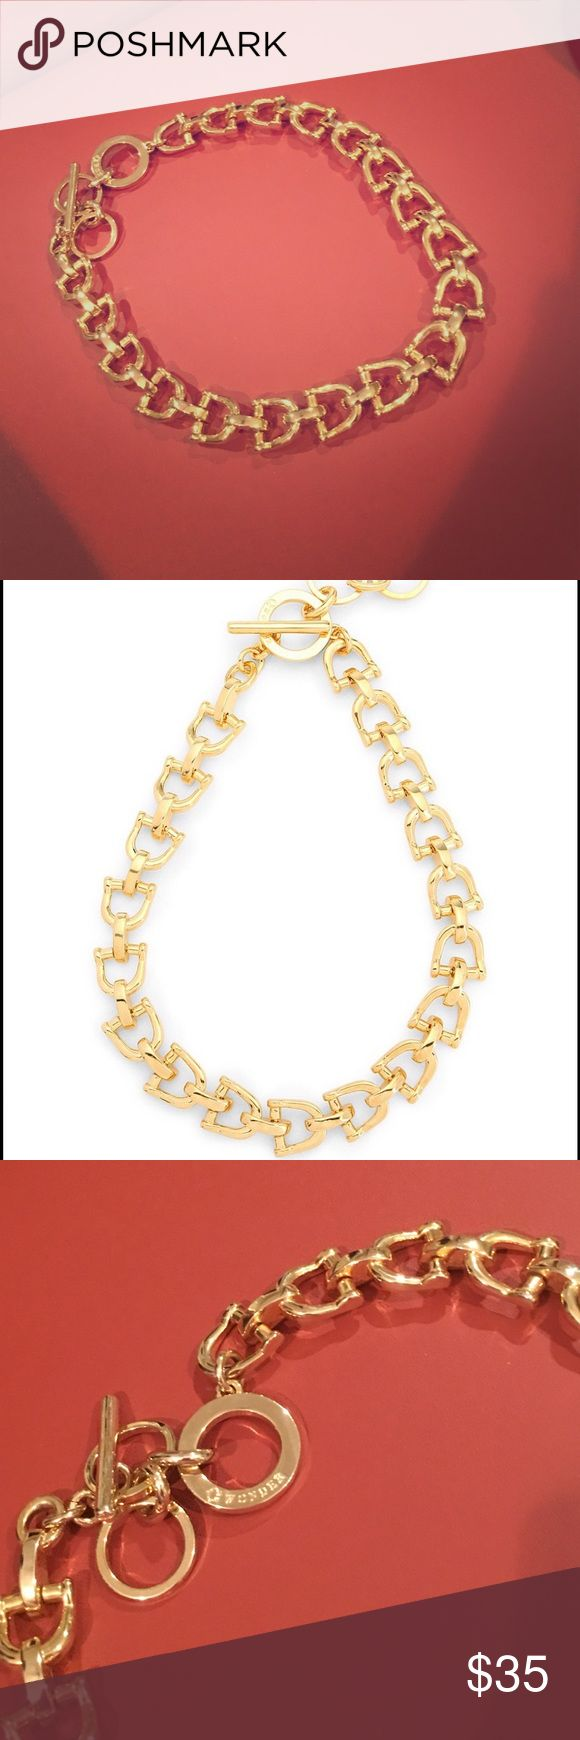 C Wonder gold stirrup link choker C Wonder 18 k gold plated metal equestrian stirrup link necklace - gently worn maybe once - mainly kept in jewelry case. Classic look. C Wonder Jewelry Necklaces